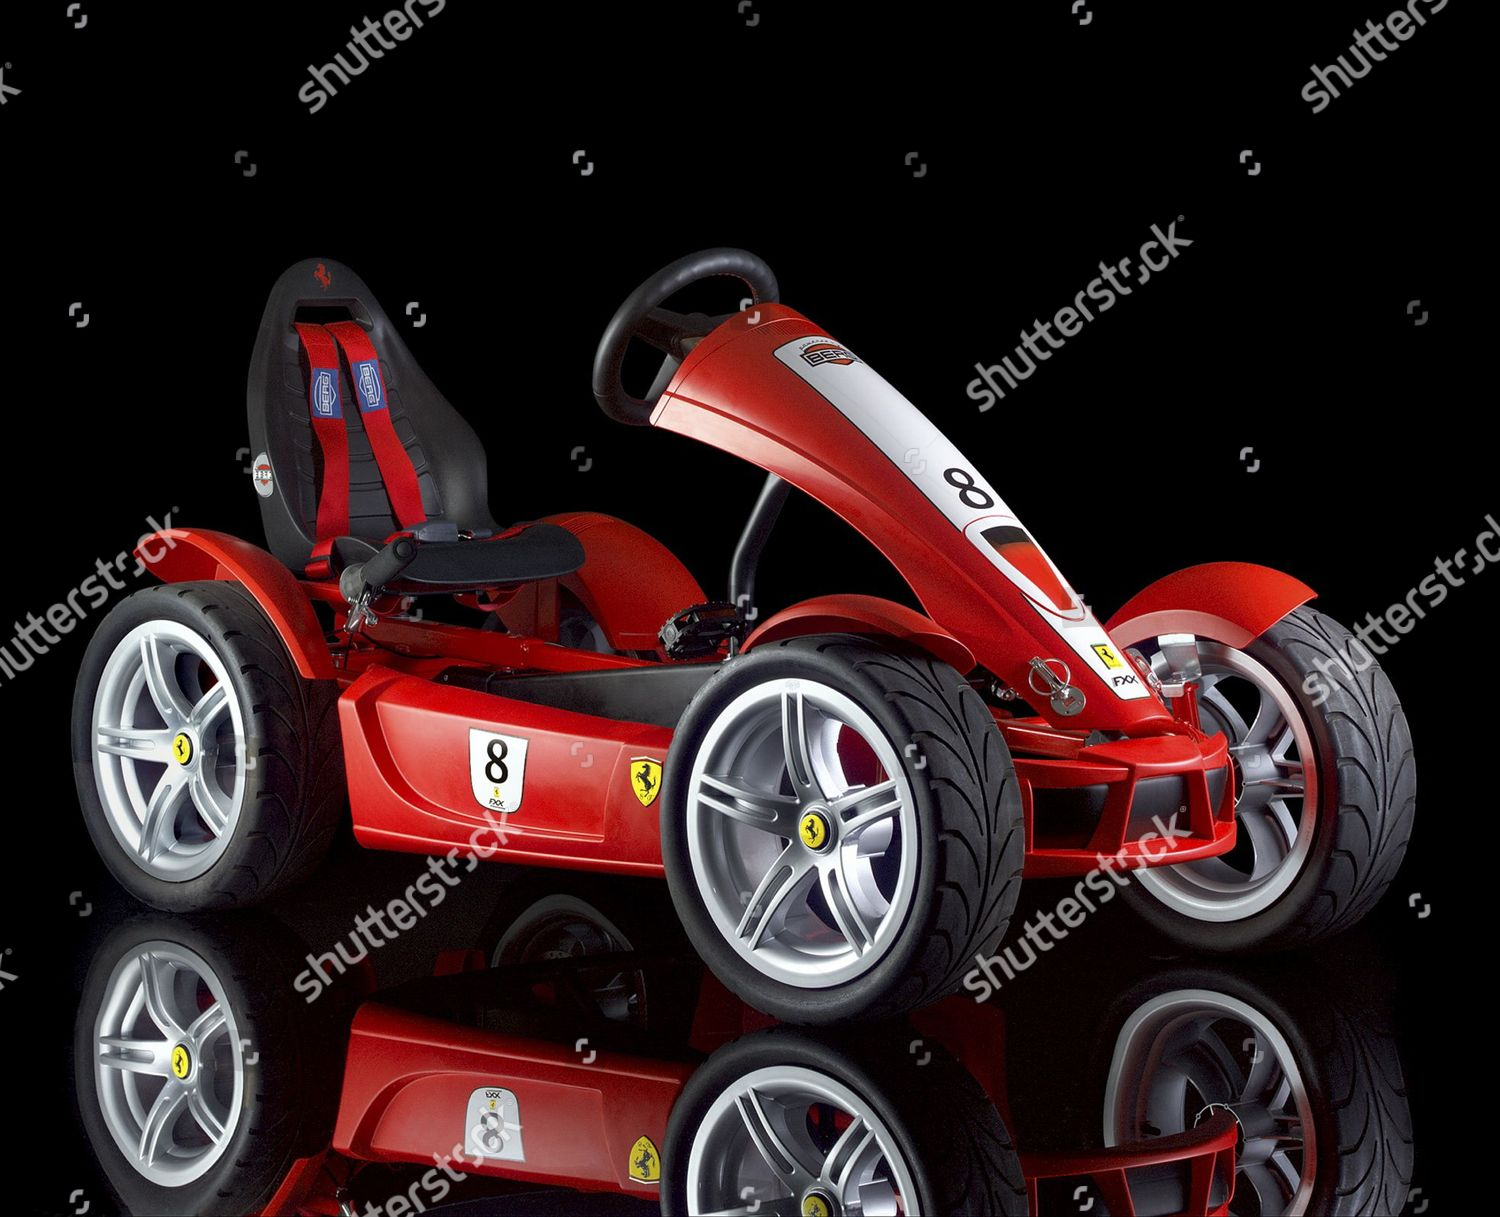 Ferrari Fxx Formula 1 Pedal Gokart That Editorial Stock Photo Stock Image Shutterstock